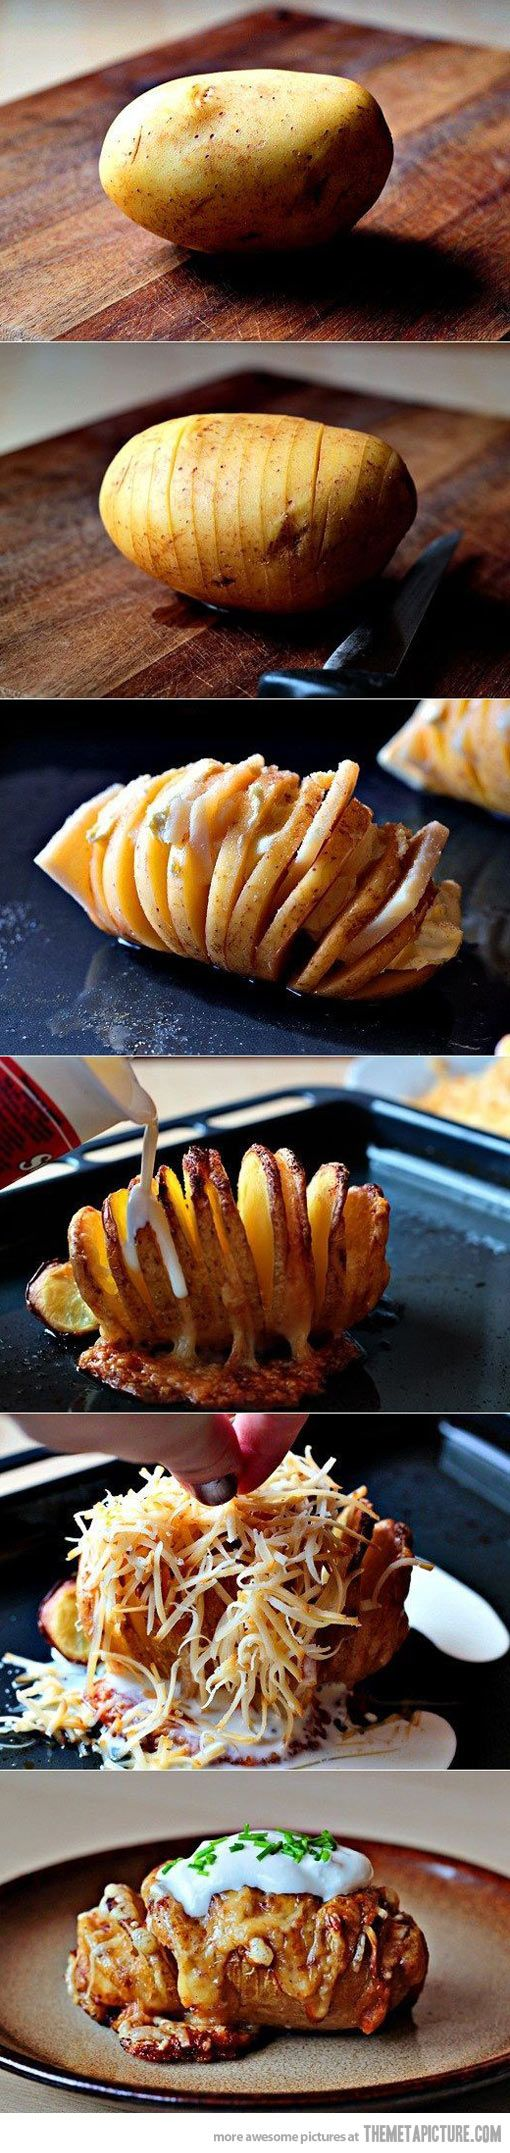 Baked potatoes